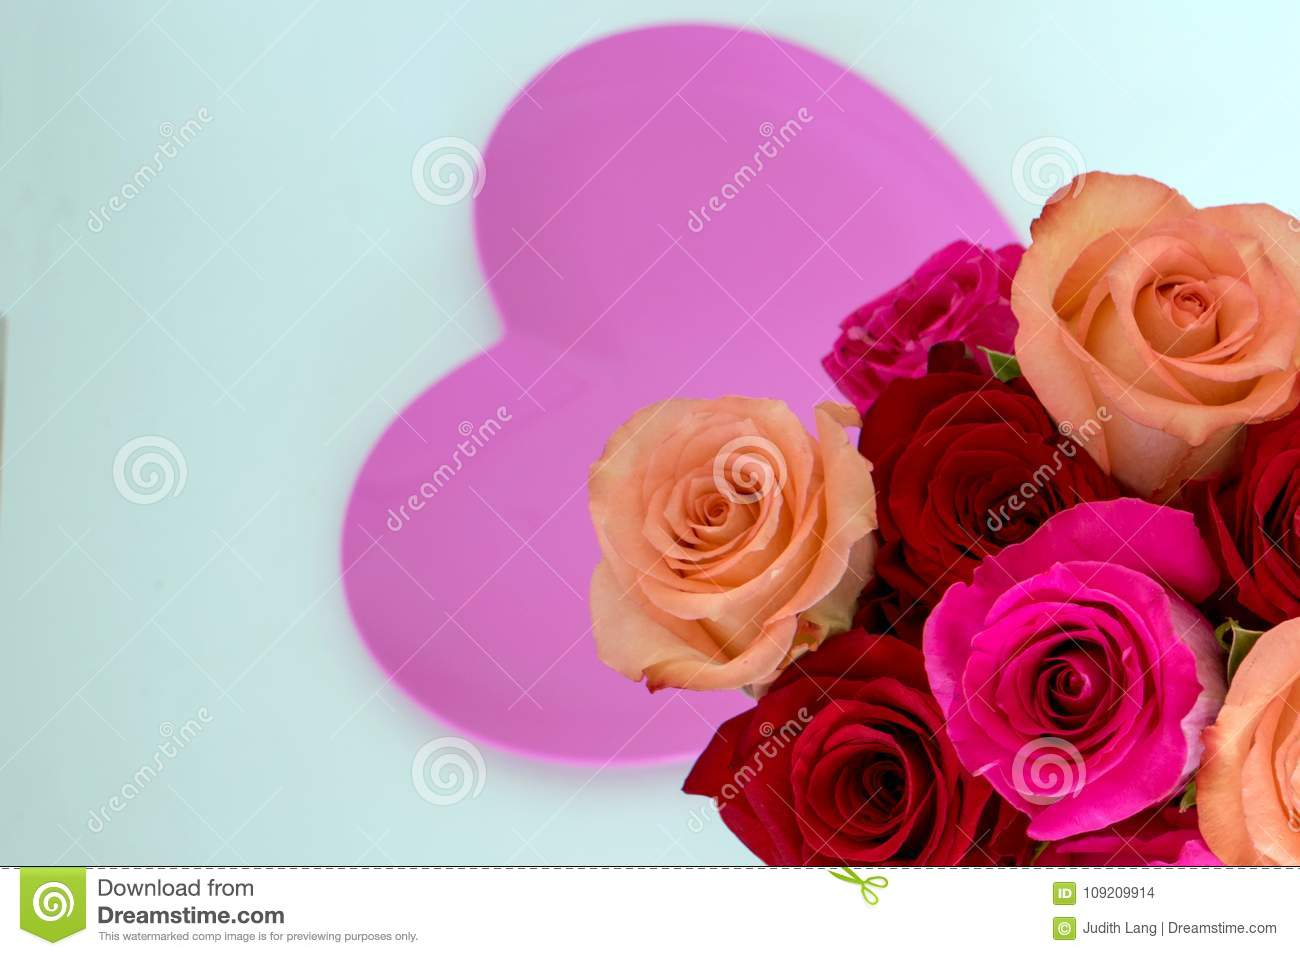 Pink heart in center with pink and red roses in right corner